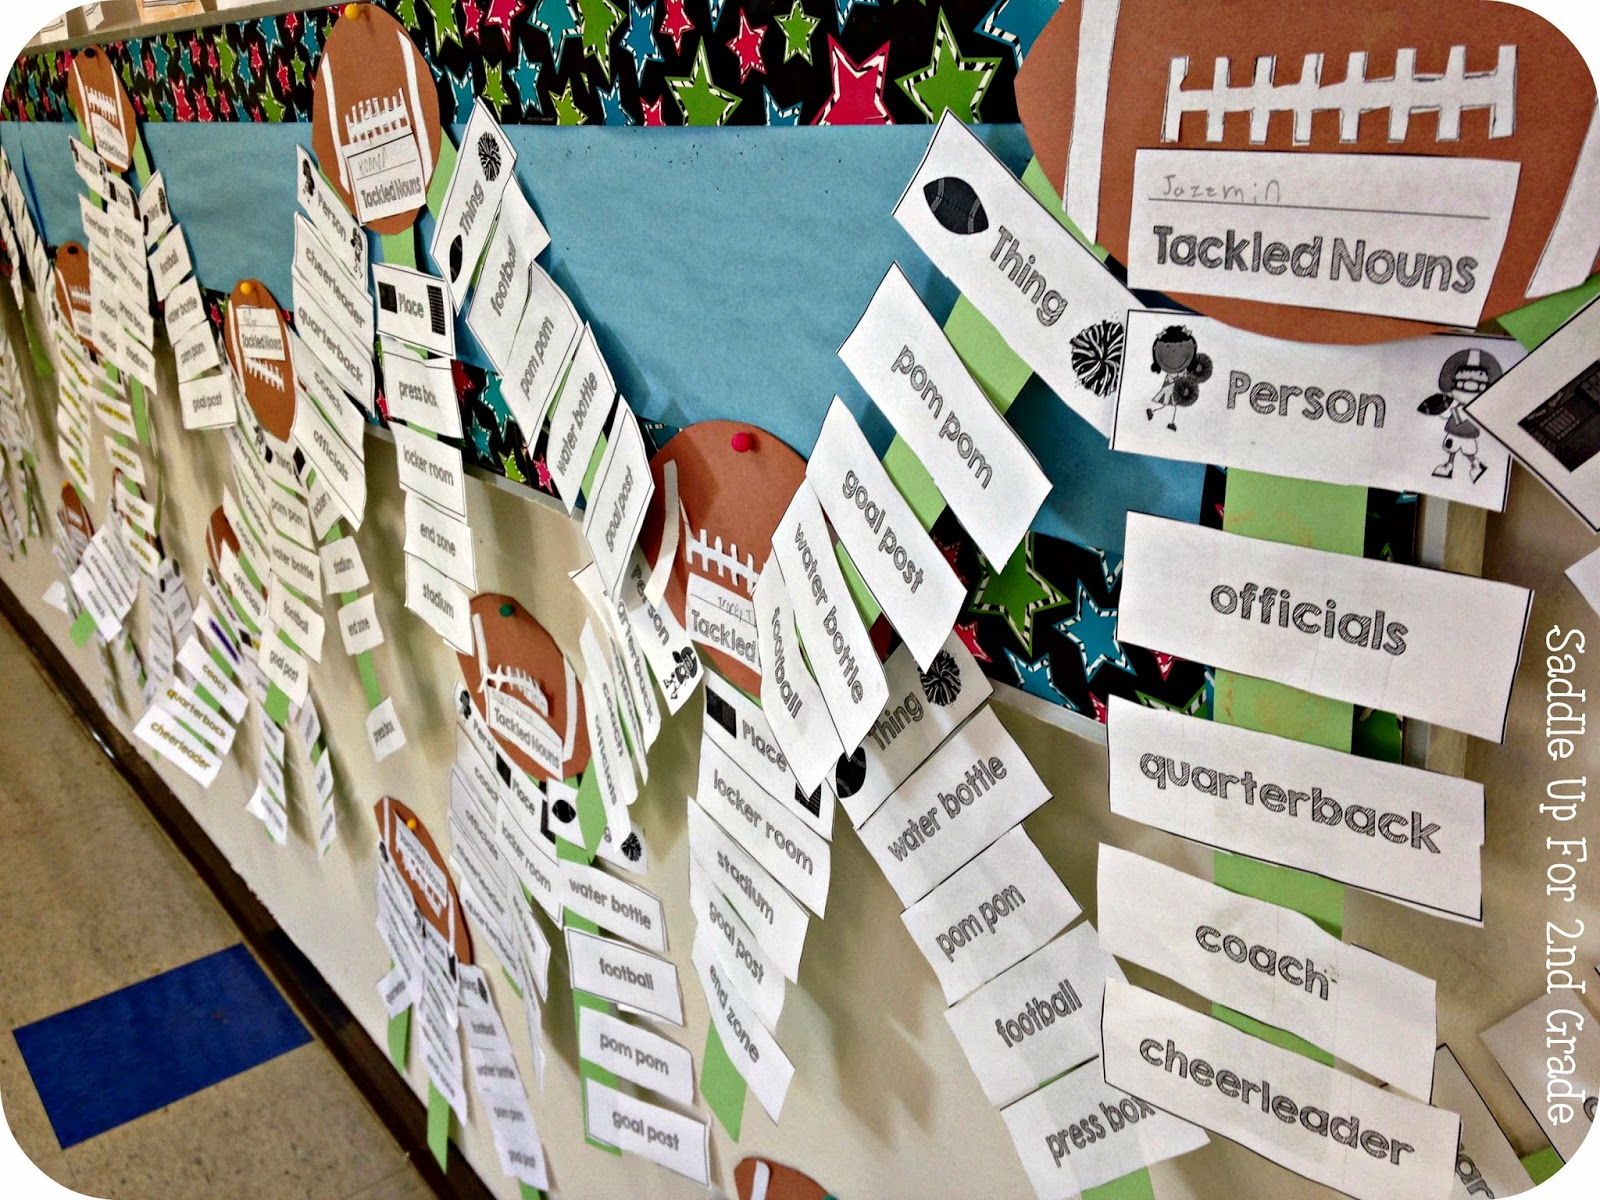 Tackling Noun Craftivity by Saddle Up For 2nd Grade